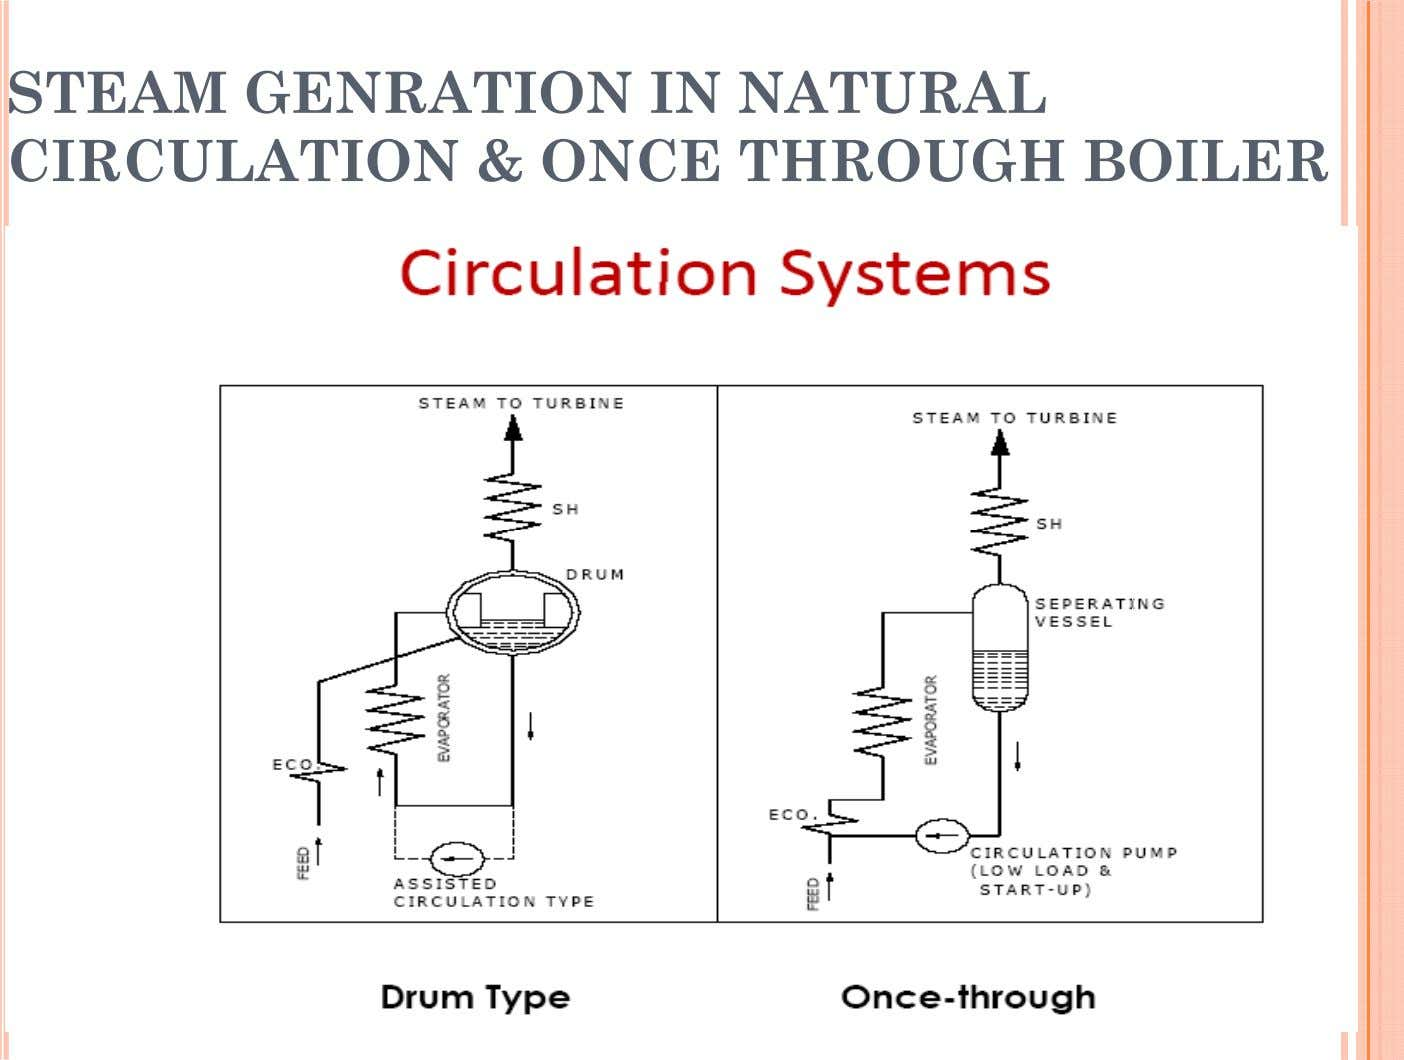 STEAM GENRATION IN NATURAL CIRCULATION & ONCE THROUGH BOILER